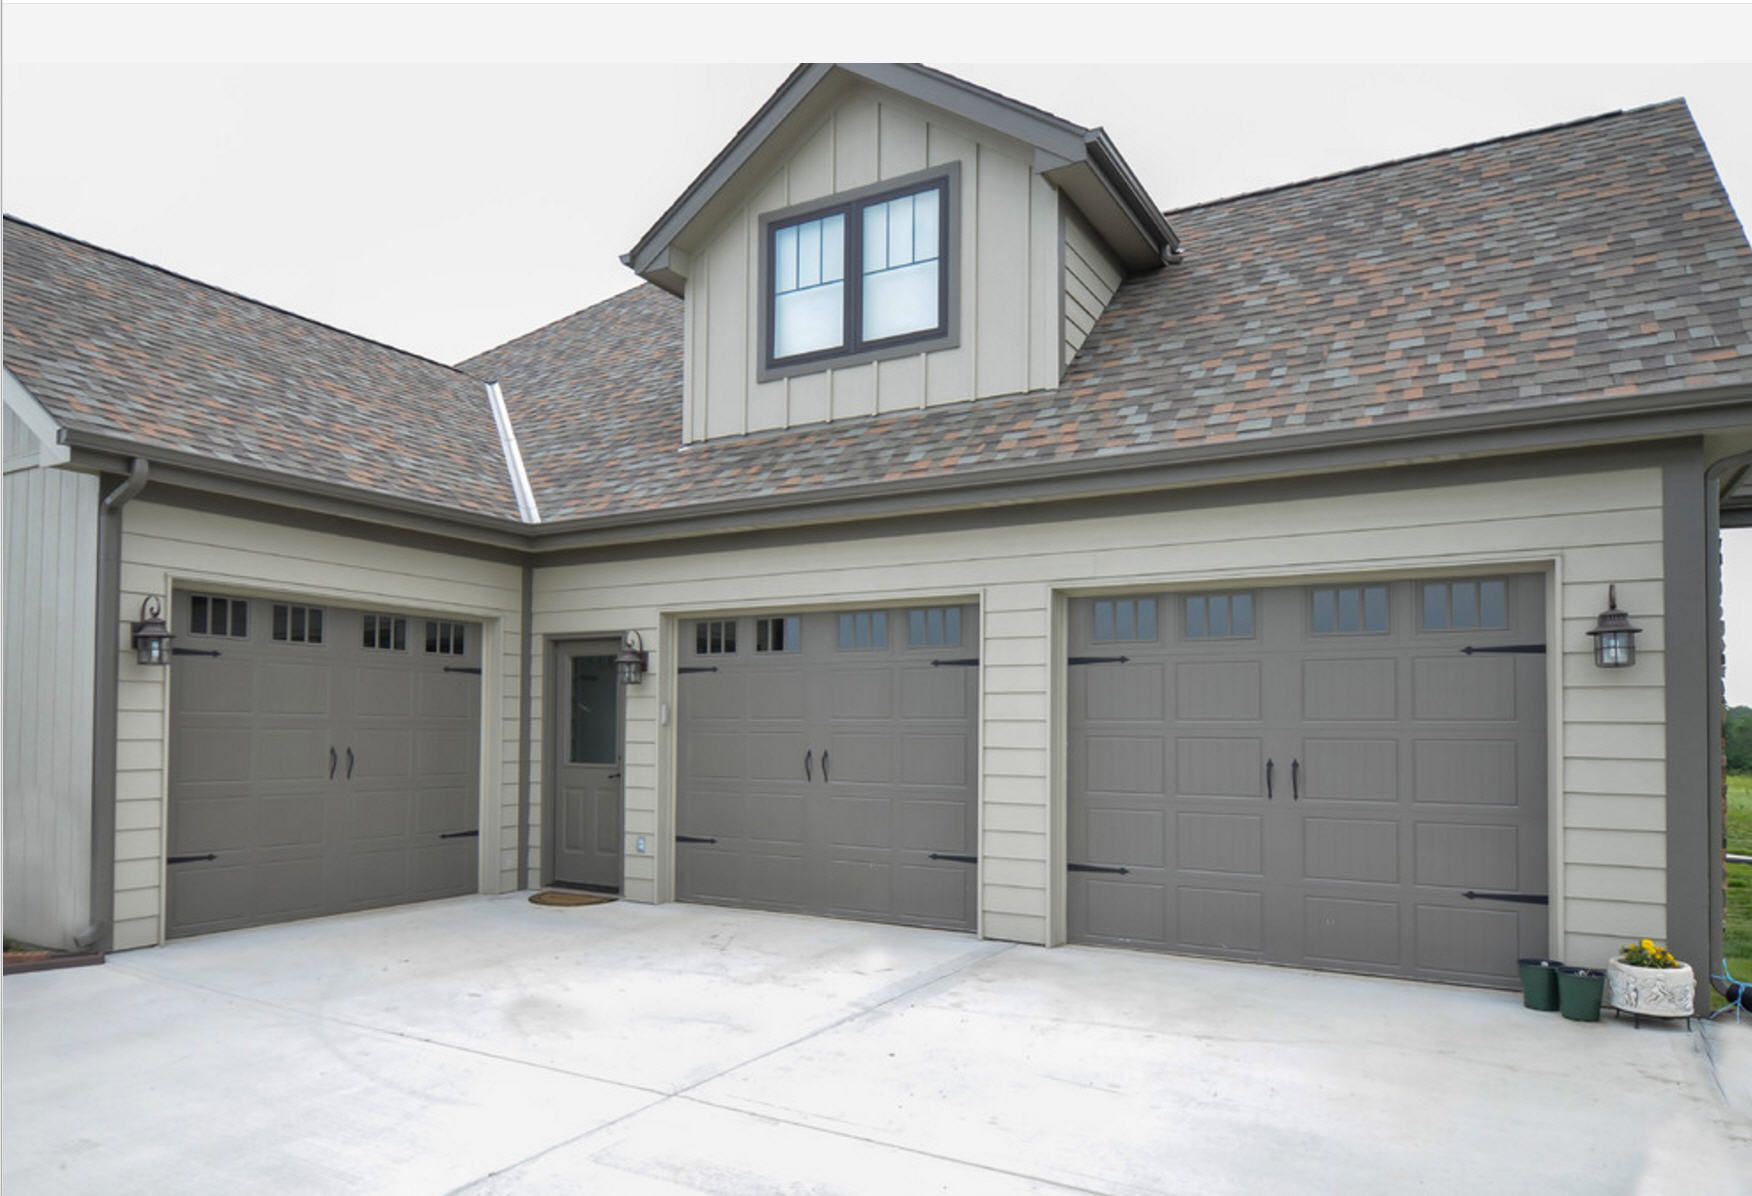 The exterior walls are intellectual gray sw 7045 and the trim is porpoise sw 7047